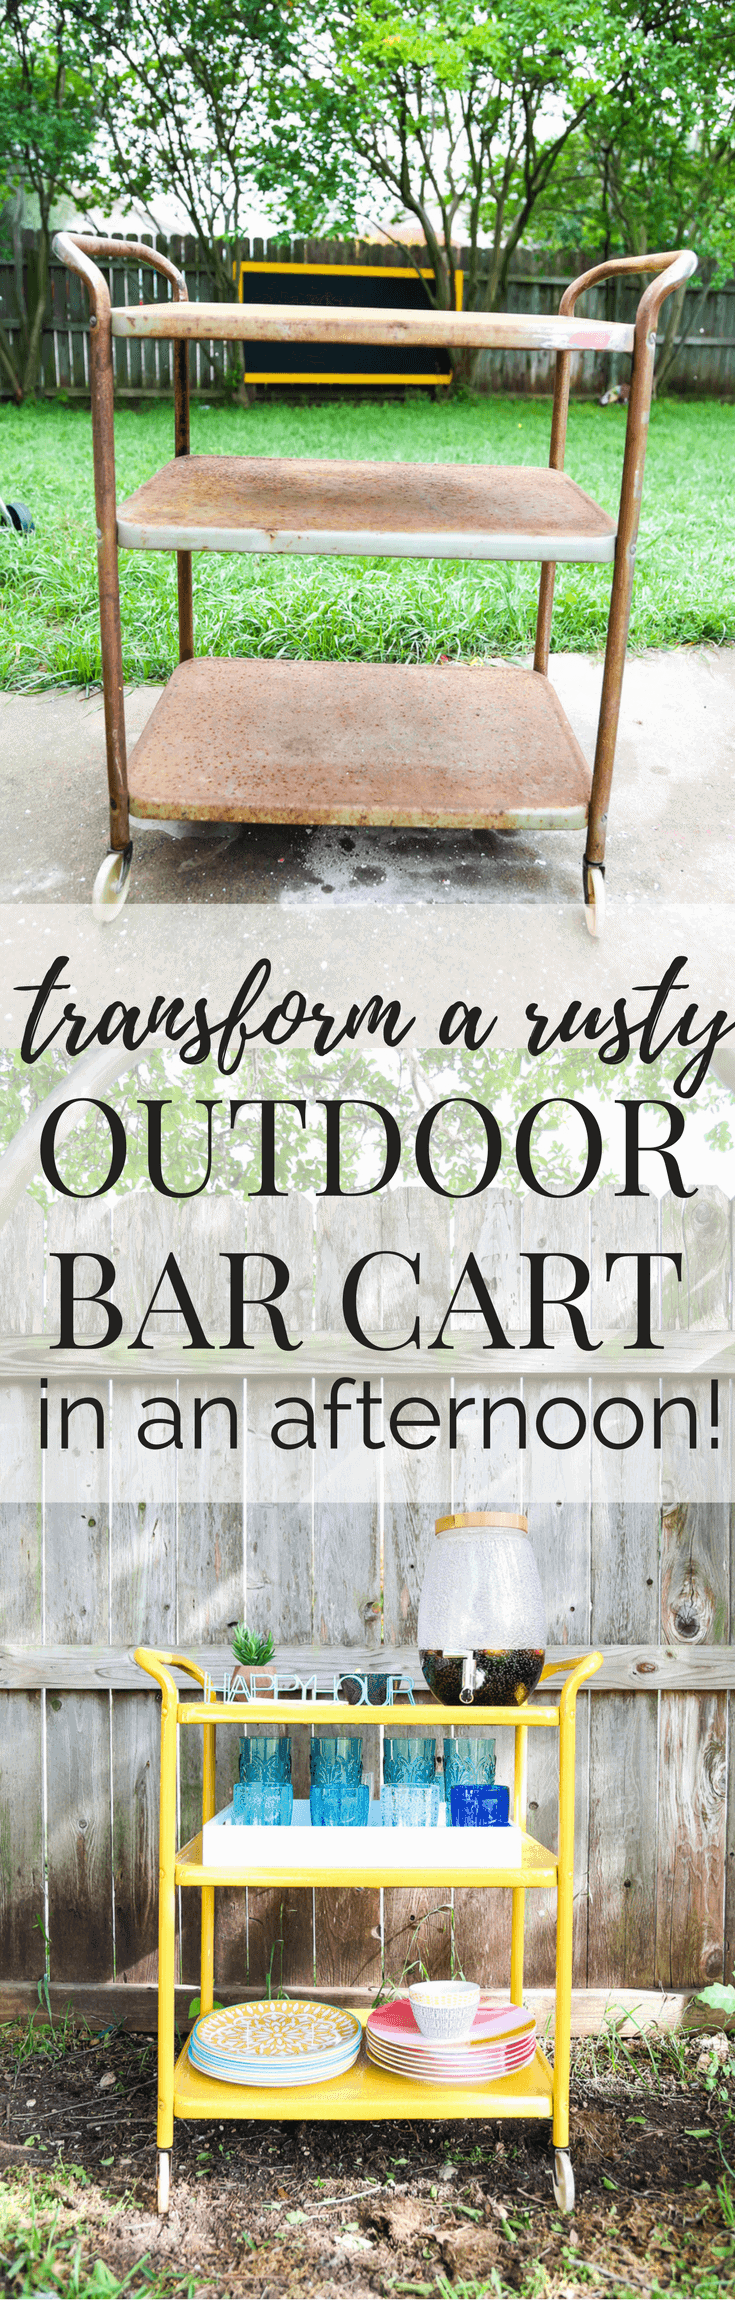 How to transform a rusty backyard bar cart using Rustoleum's line of rust-stopping primer and spray paint. Great ideas for rusty furniture makeovers!